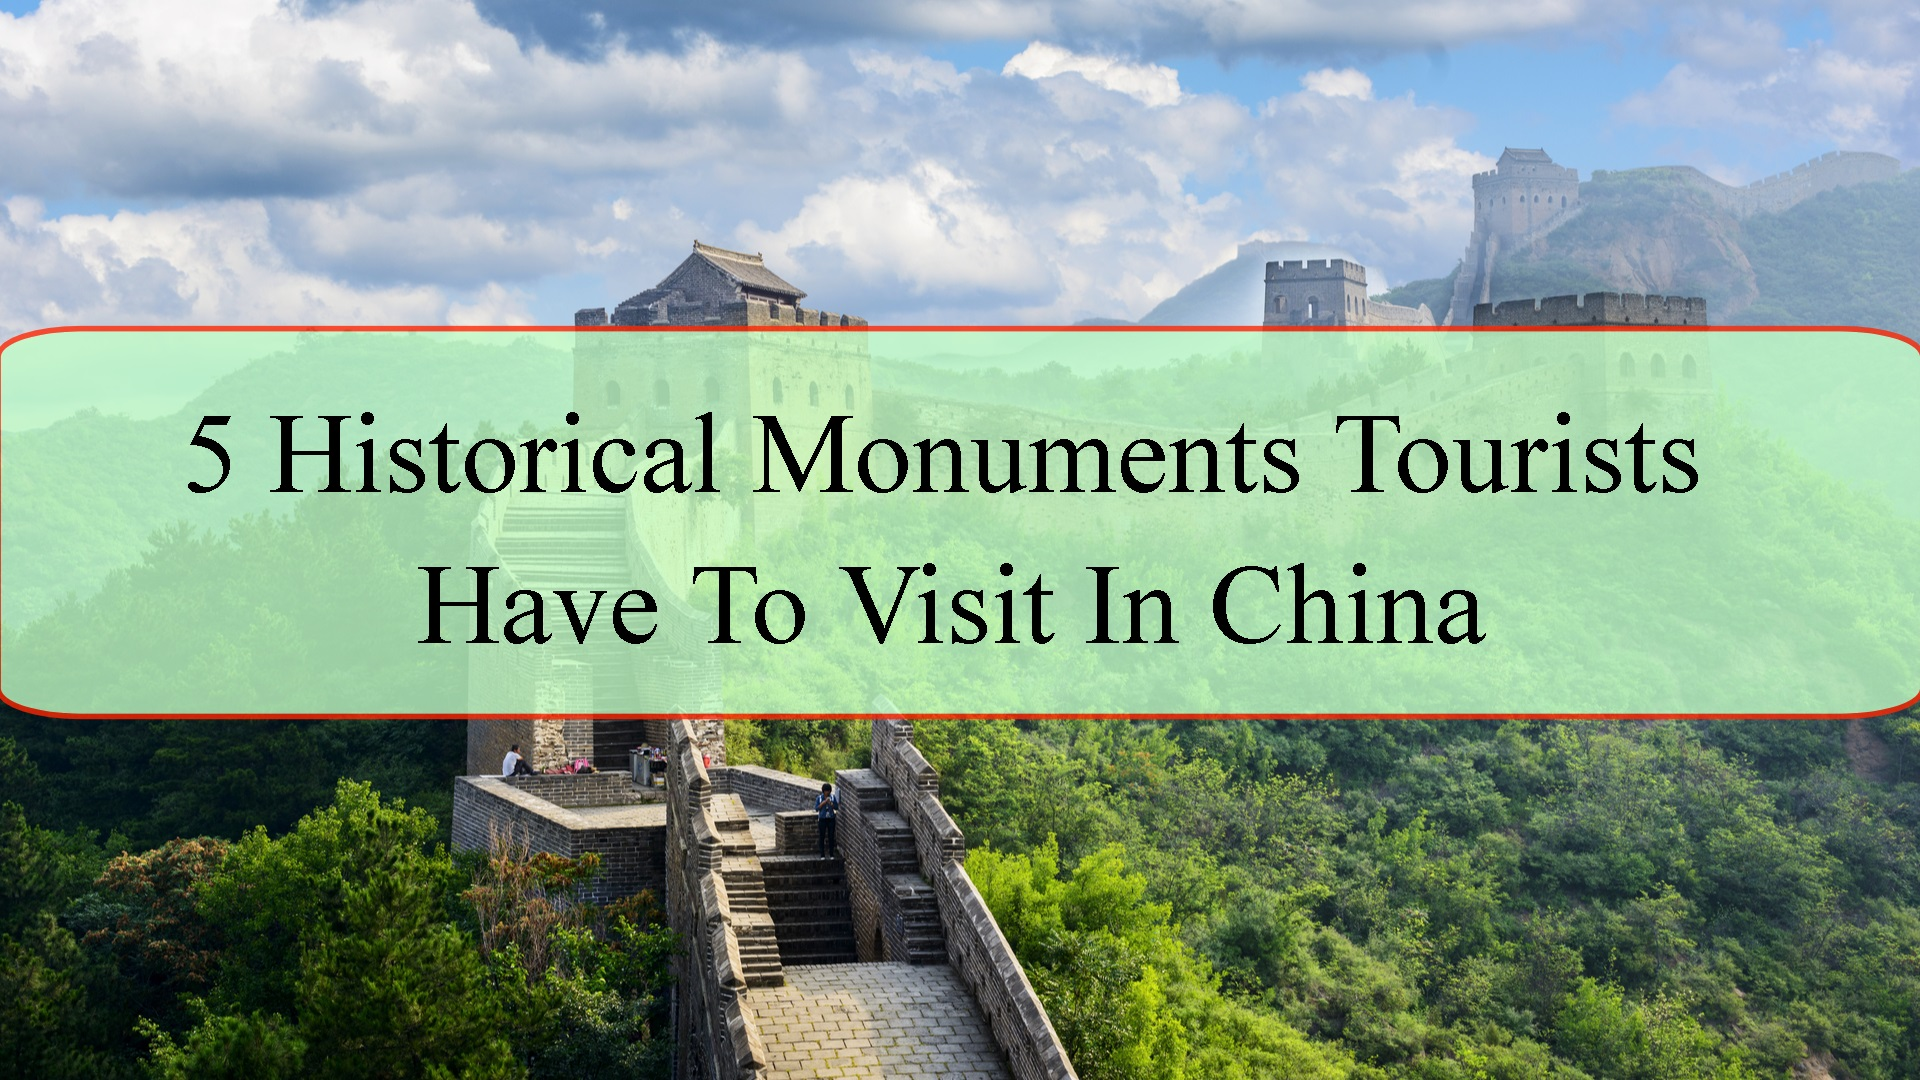 5 Historical Monuments Tourists Have To Visit In China